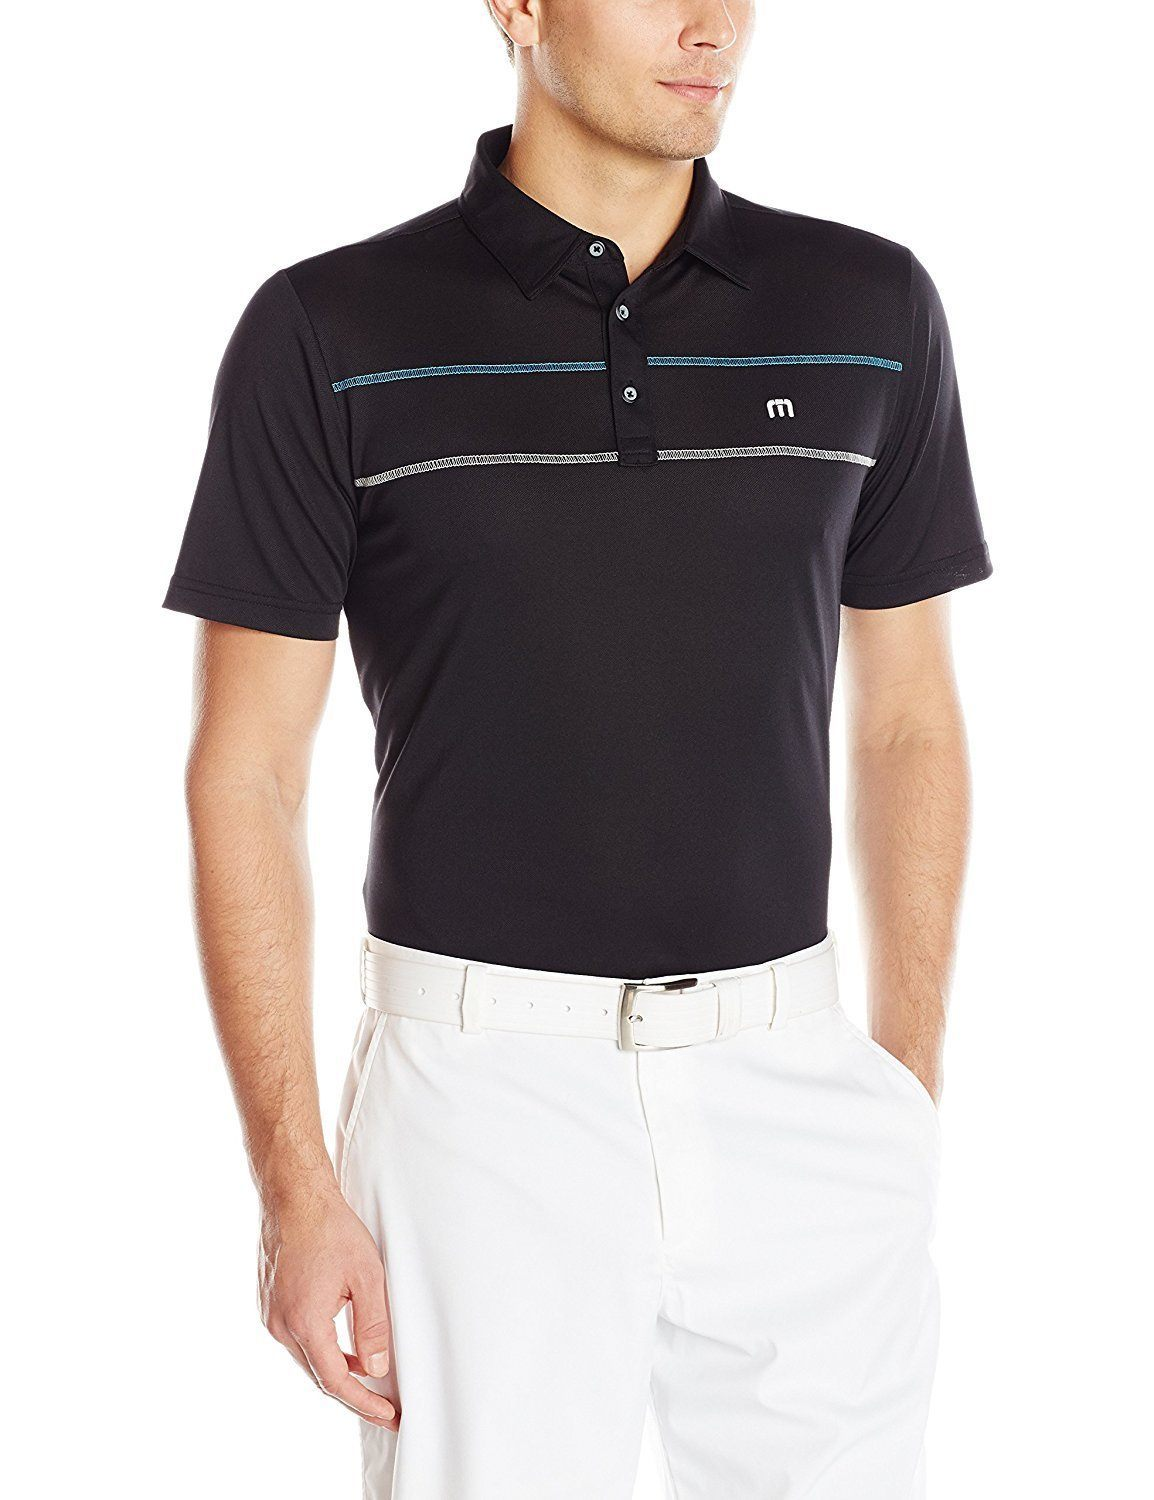 Travis Mathew Junior Golf